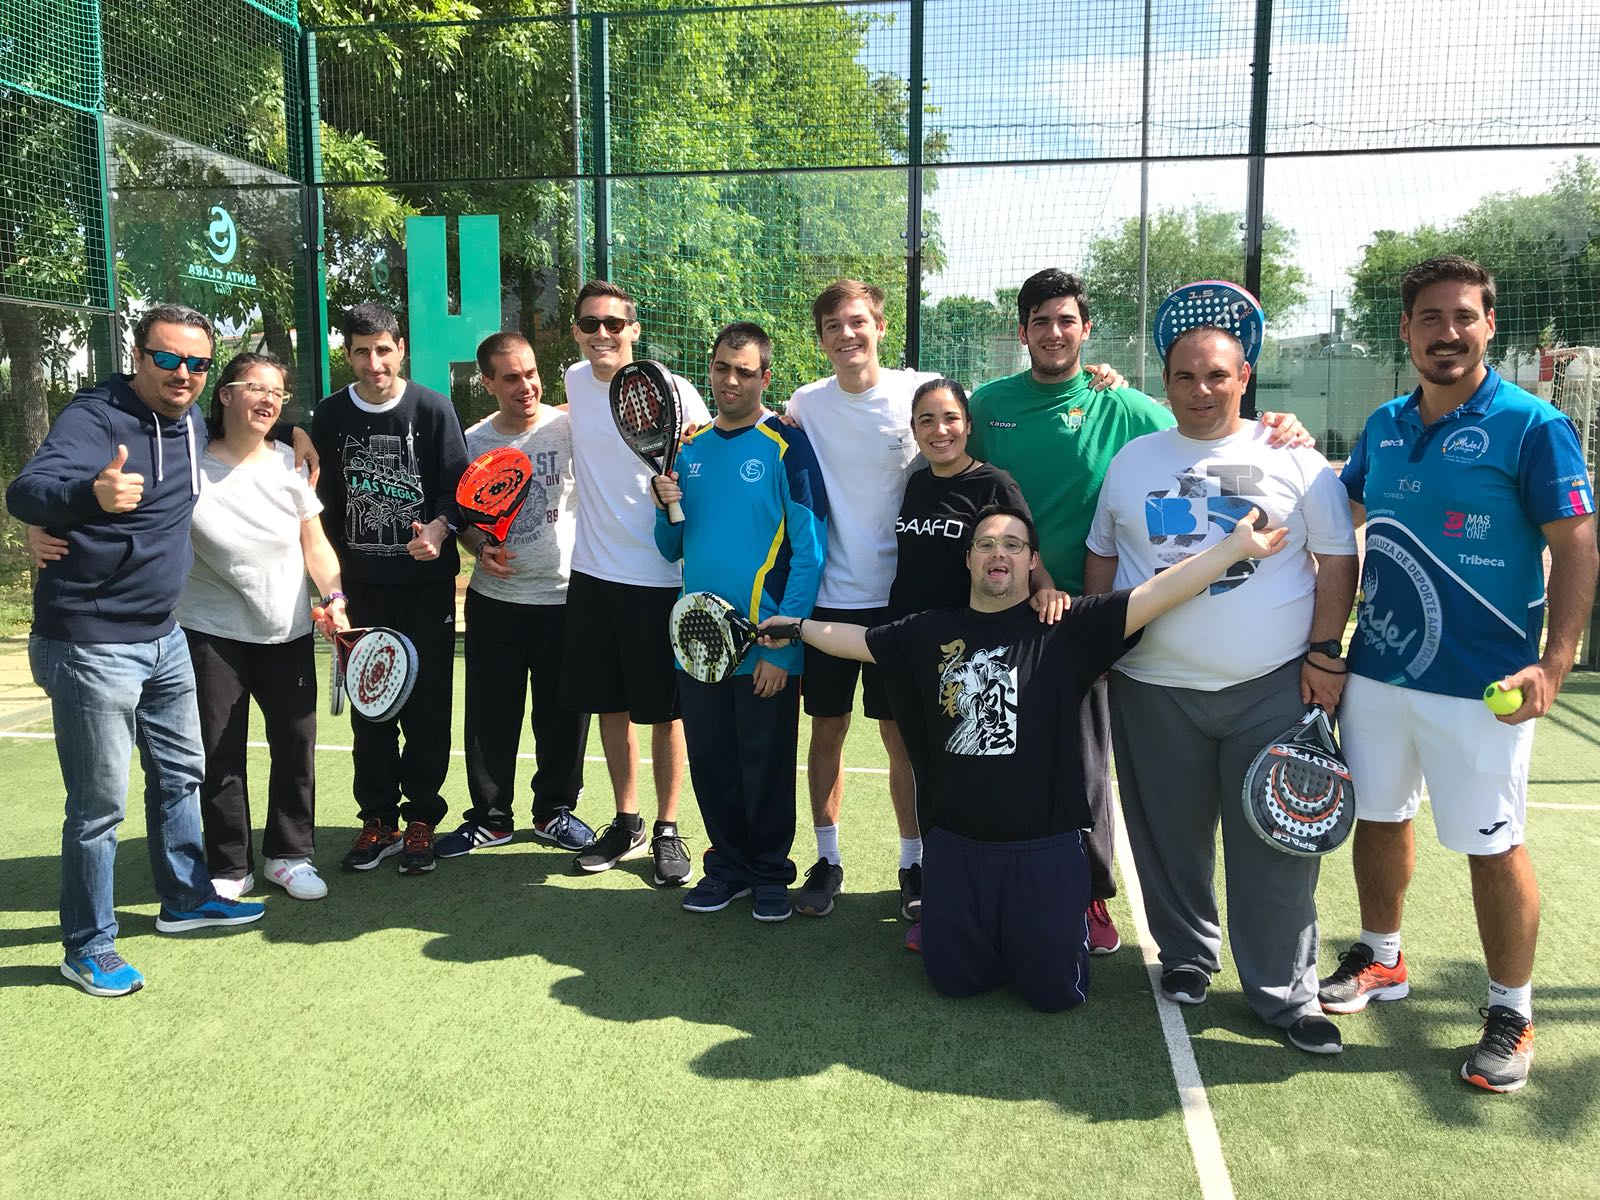 Volunteer in Spain with the disabled